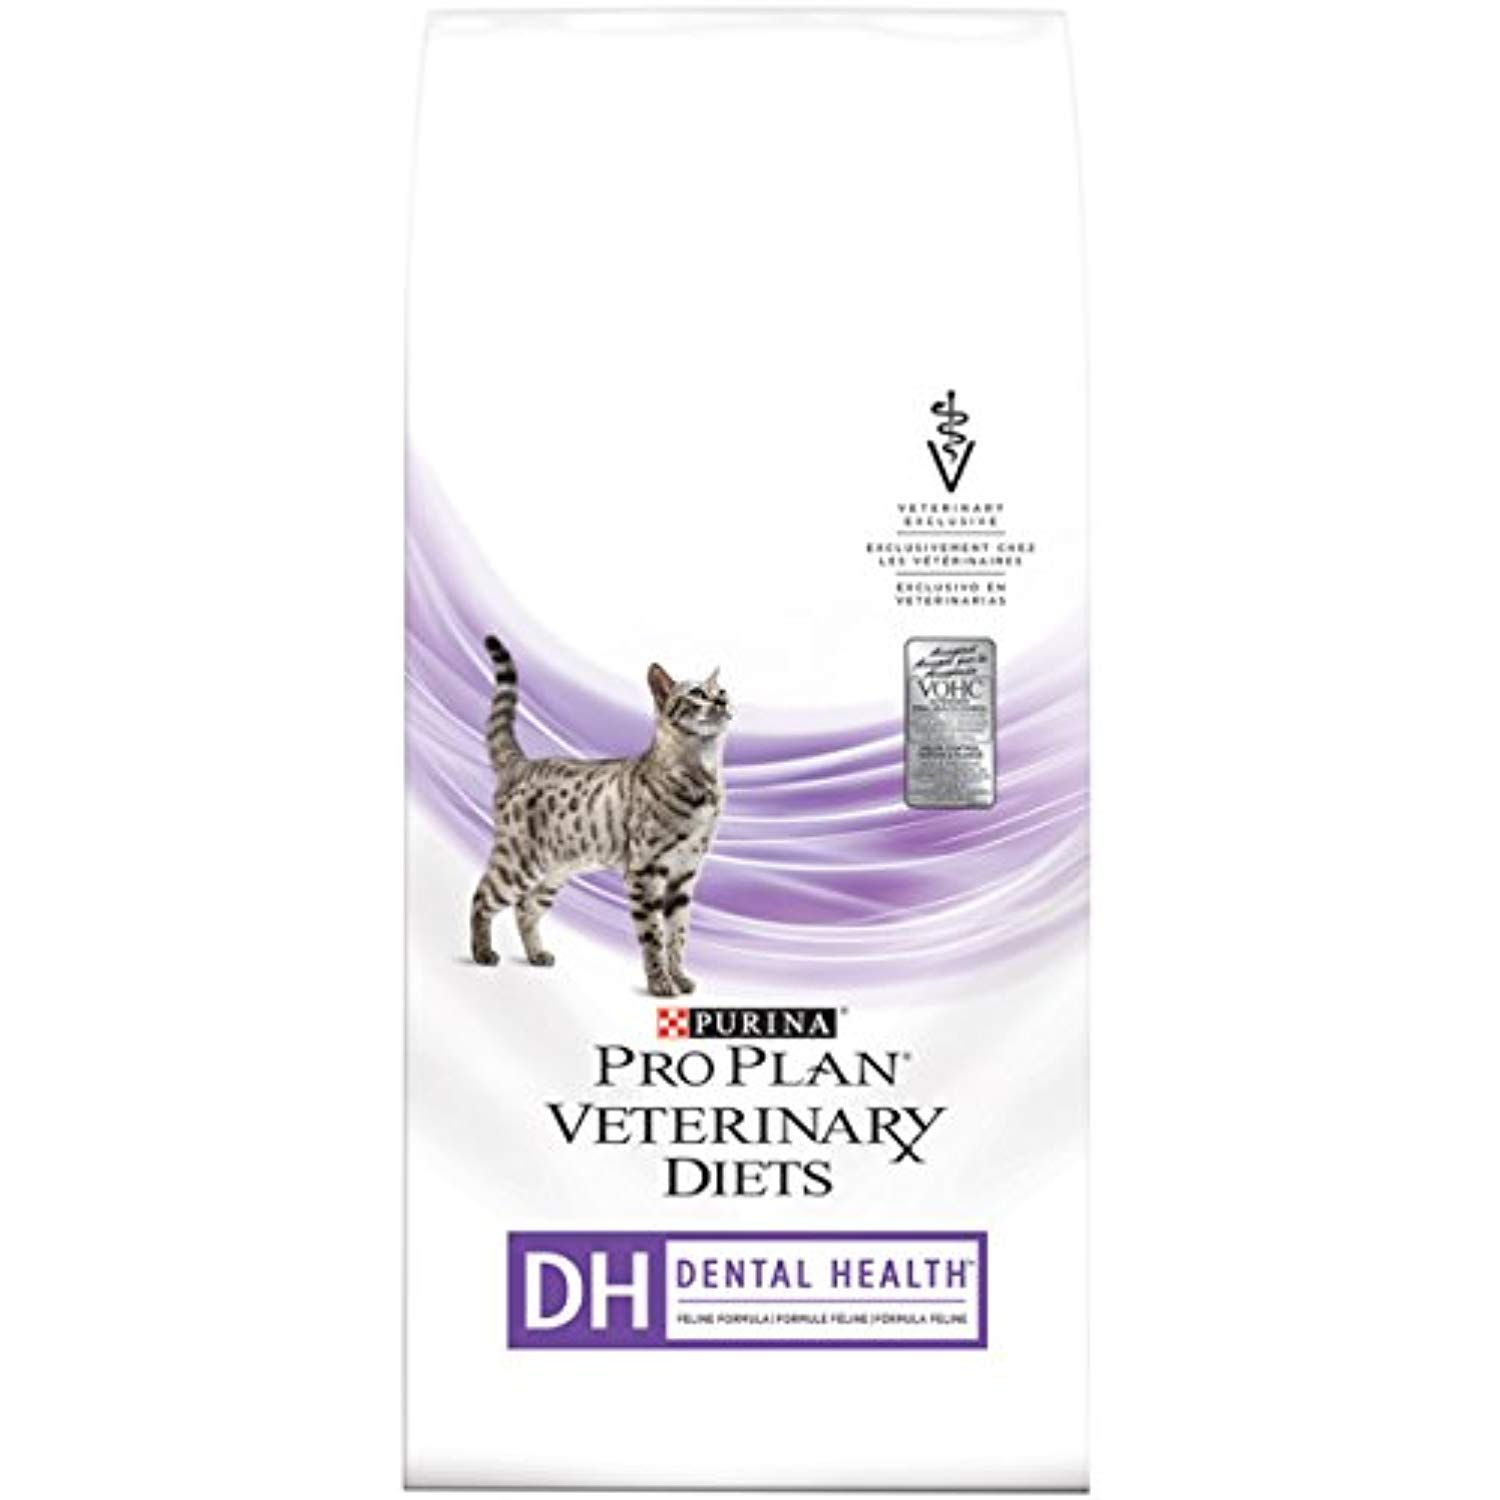 Purina Pro Plan Veterinary Diets Dh Dh Dental Health Dry Food 1